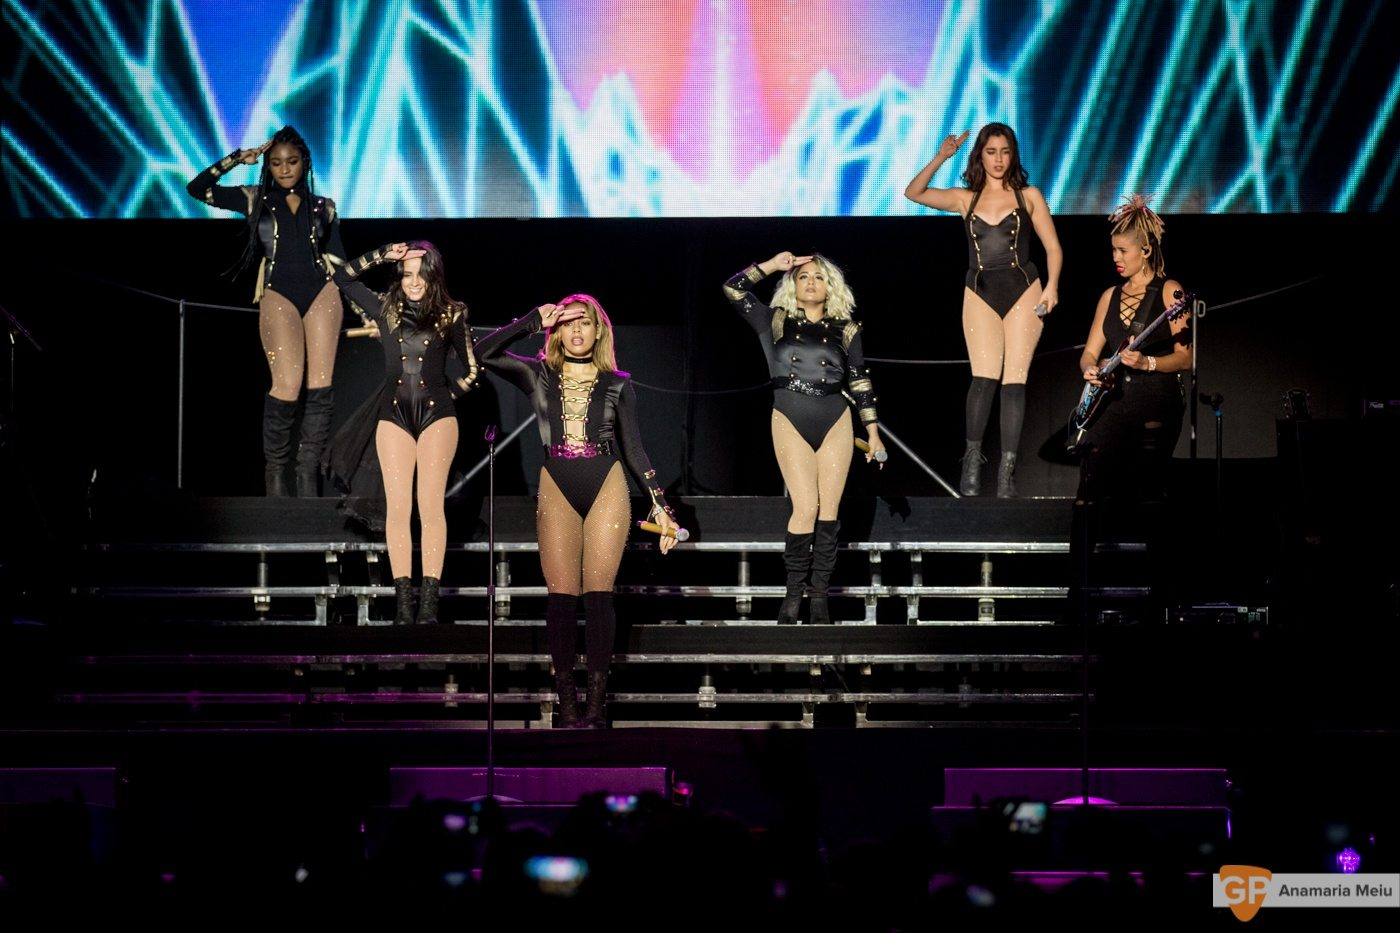 Fifth Harmony at 3Arena by Anamaria Meiu